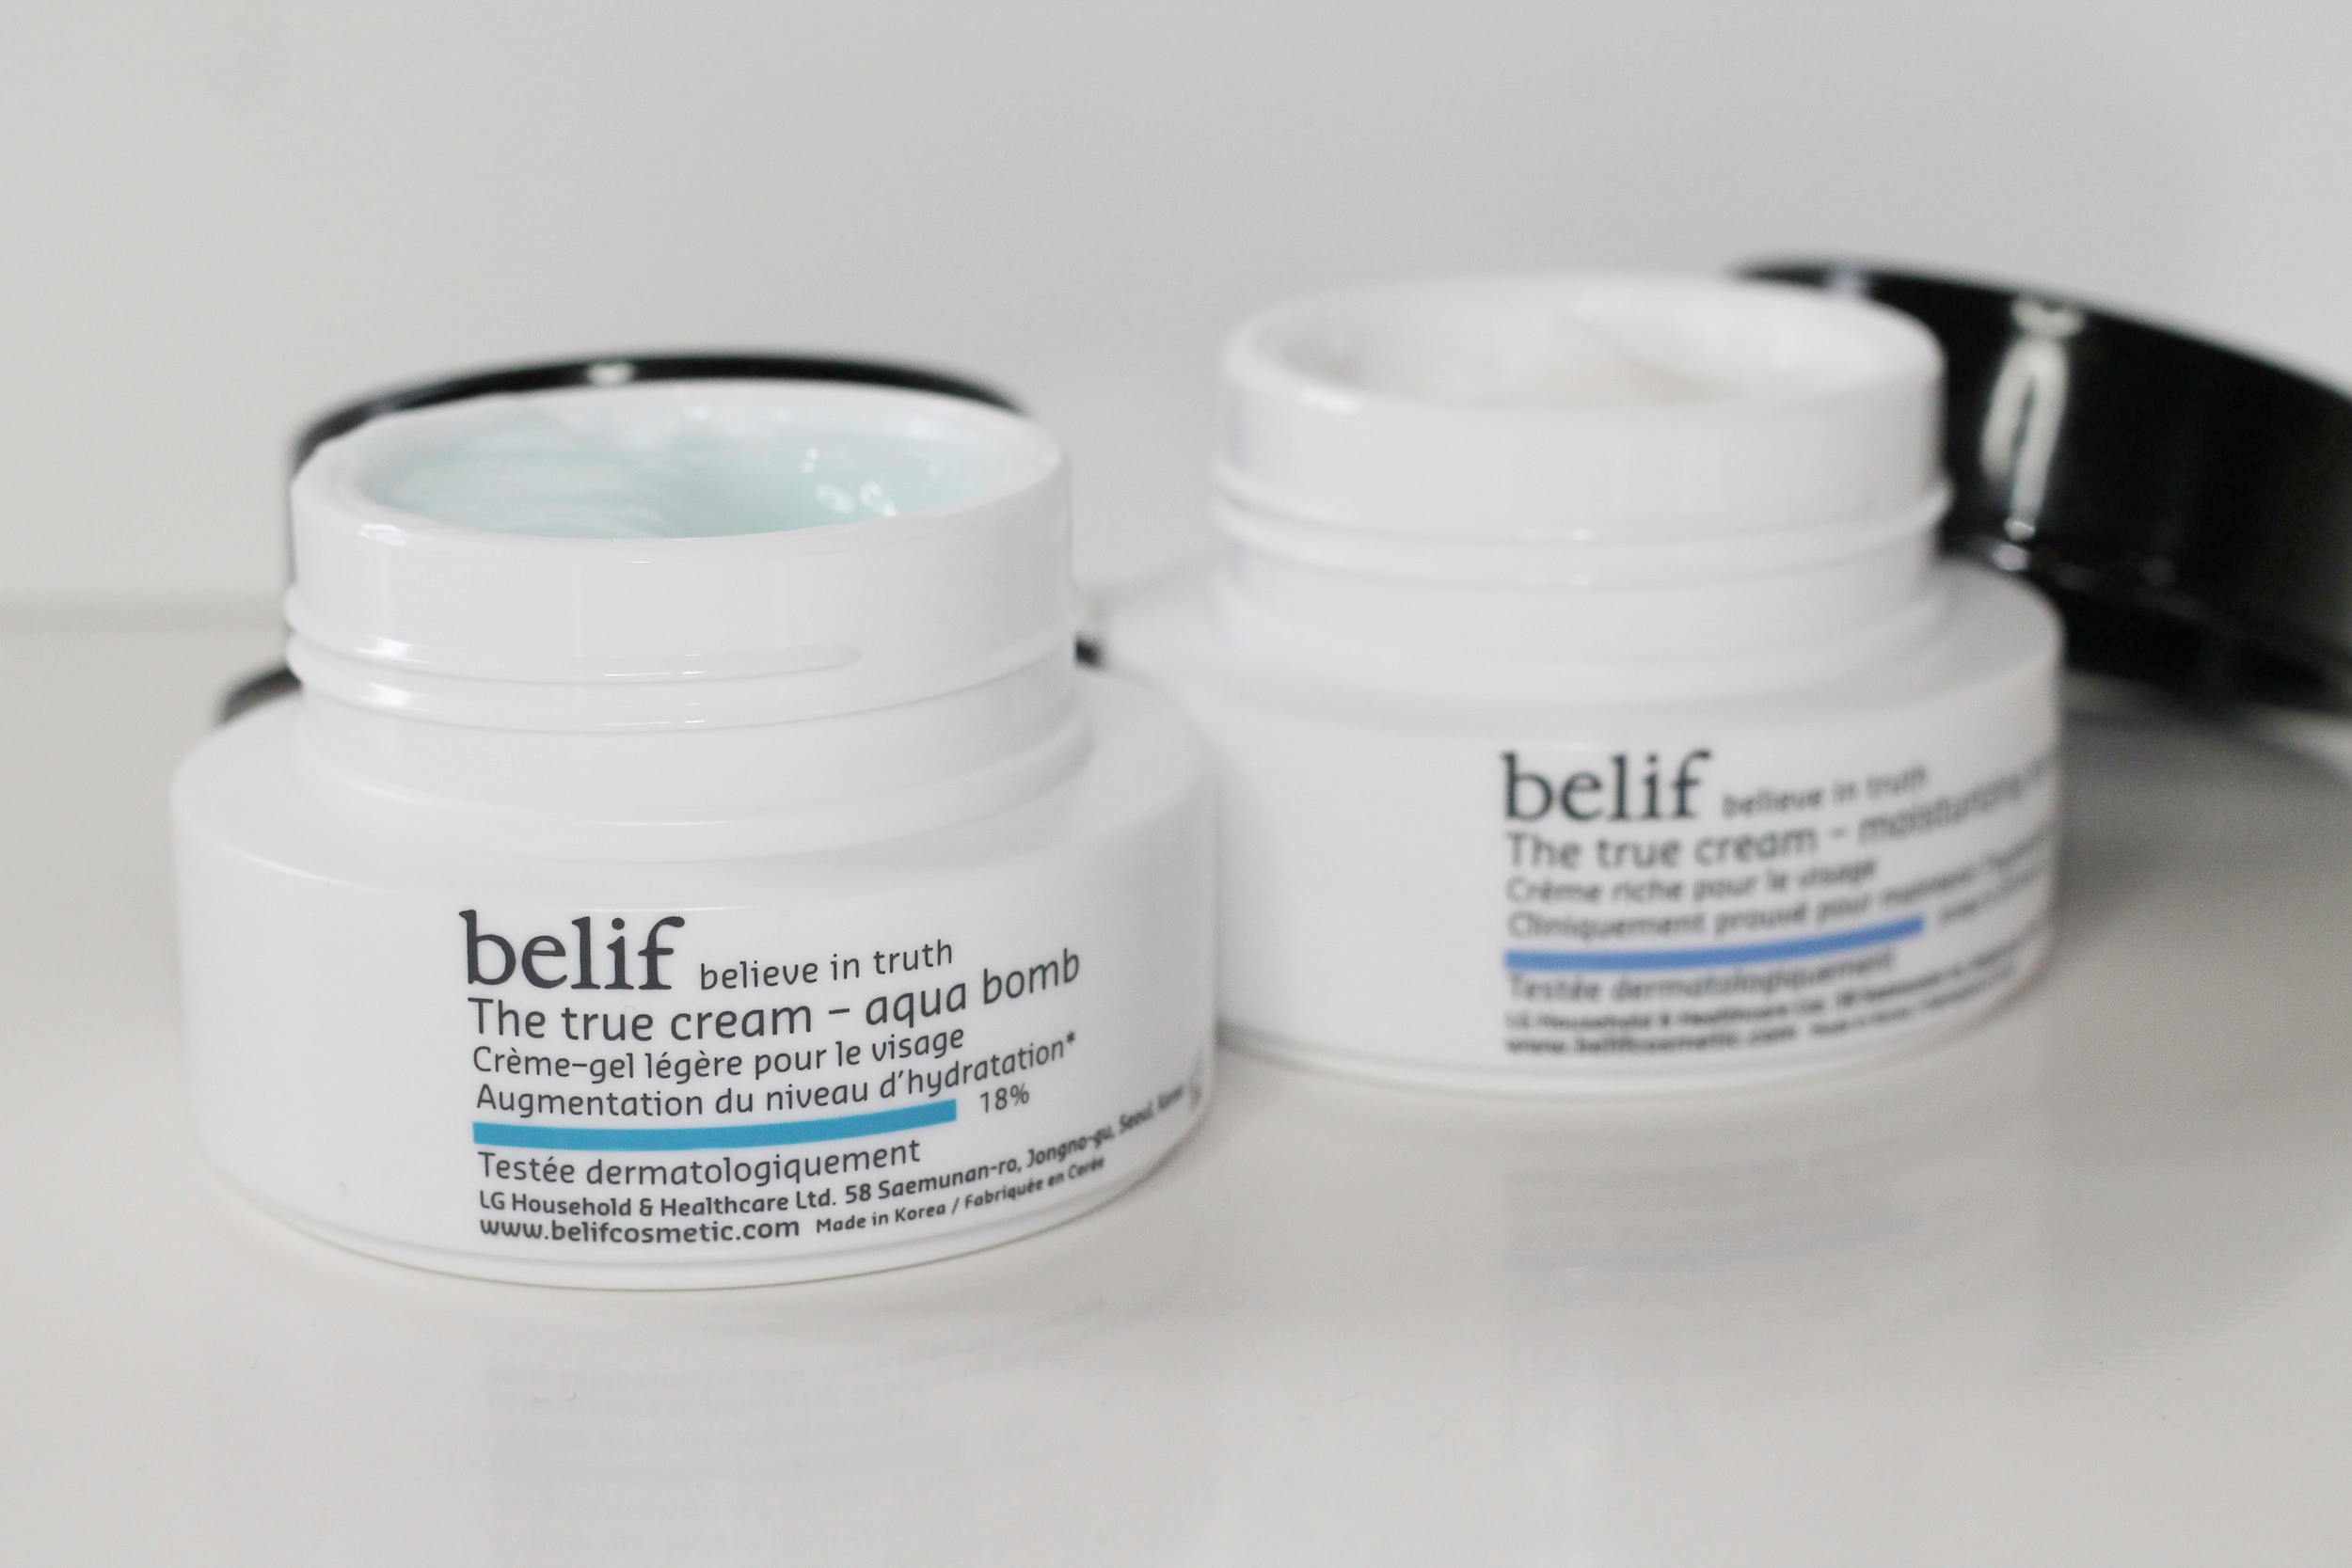 belif The True Cream Aqua Bomb, $47 (left)  b elif The True Cream Moisturizing Bomb, $47 (right)  Photography: Marrin Hicks Creative